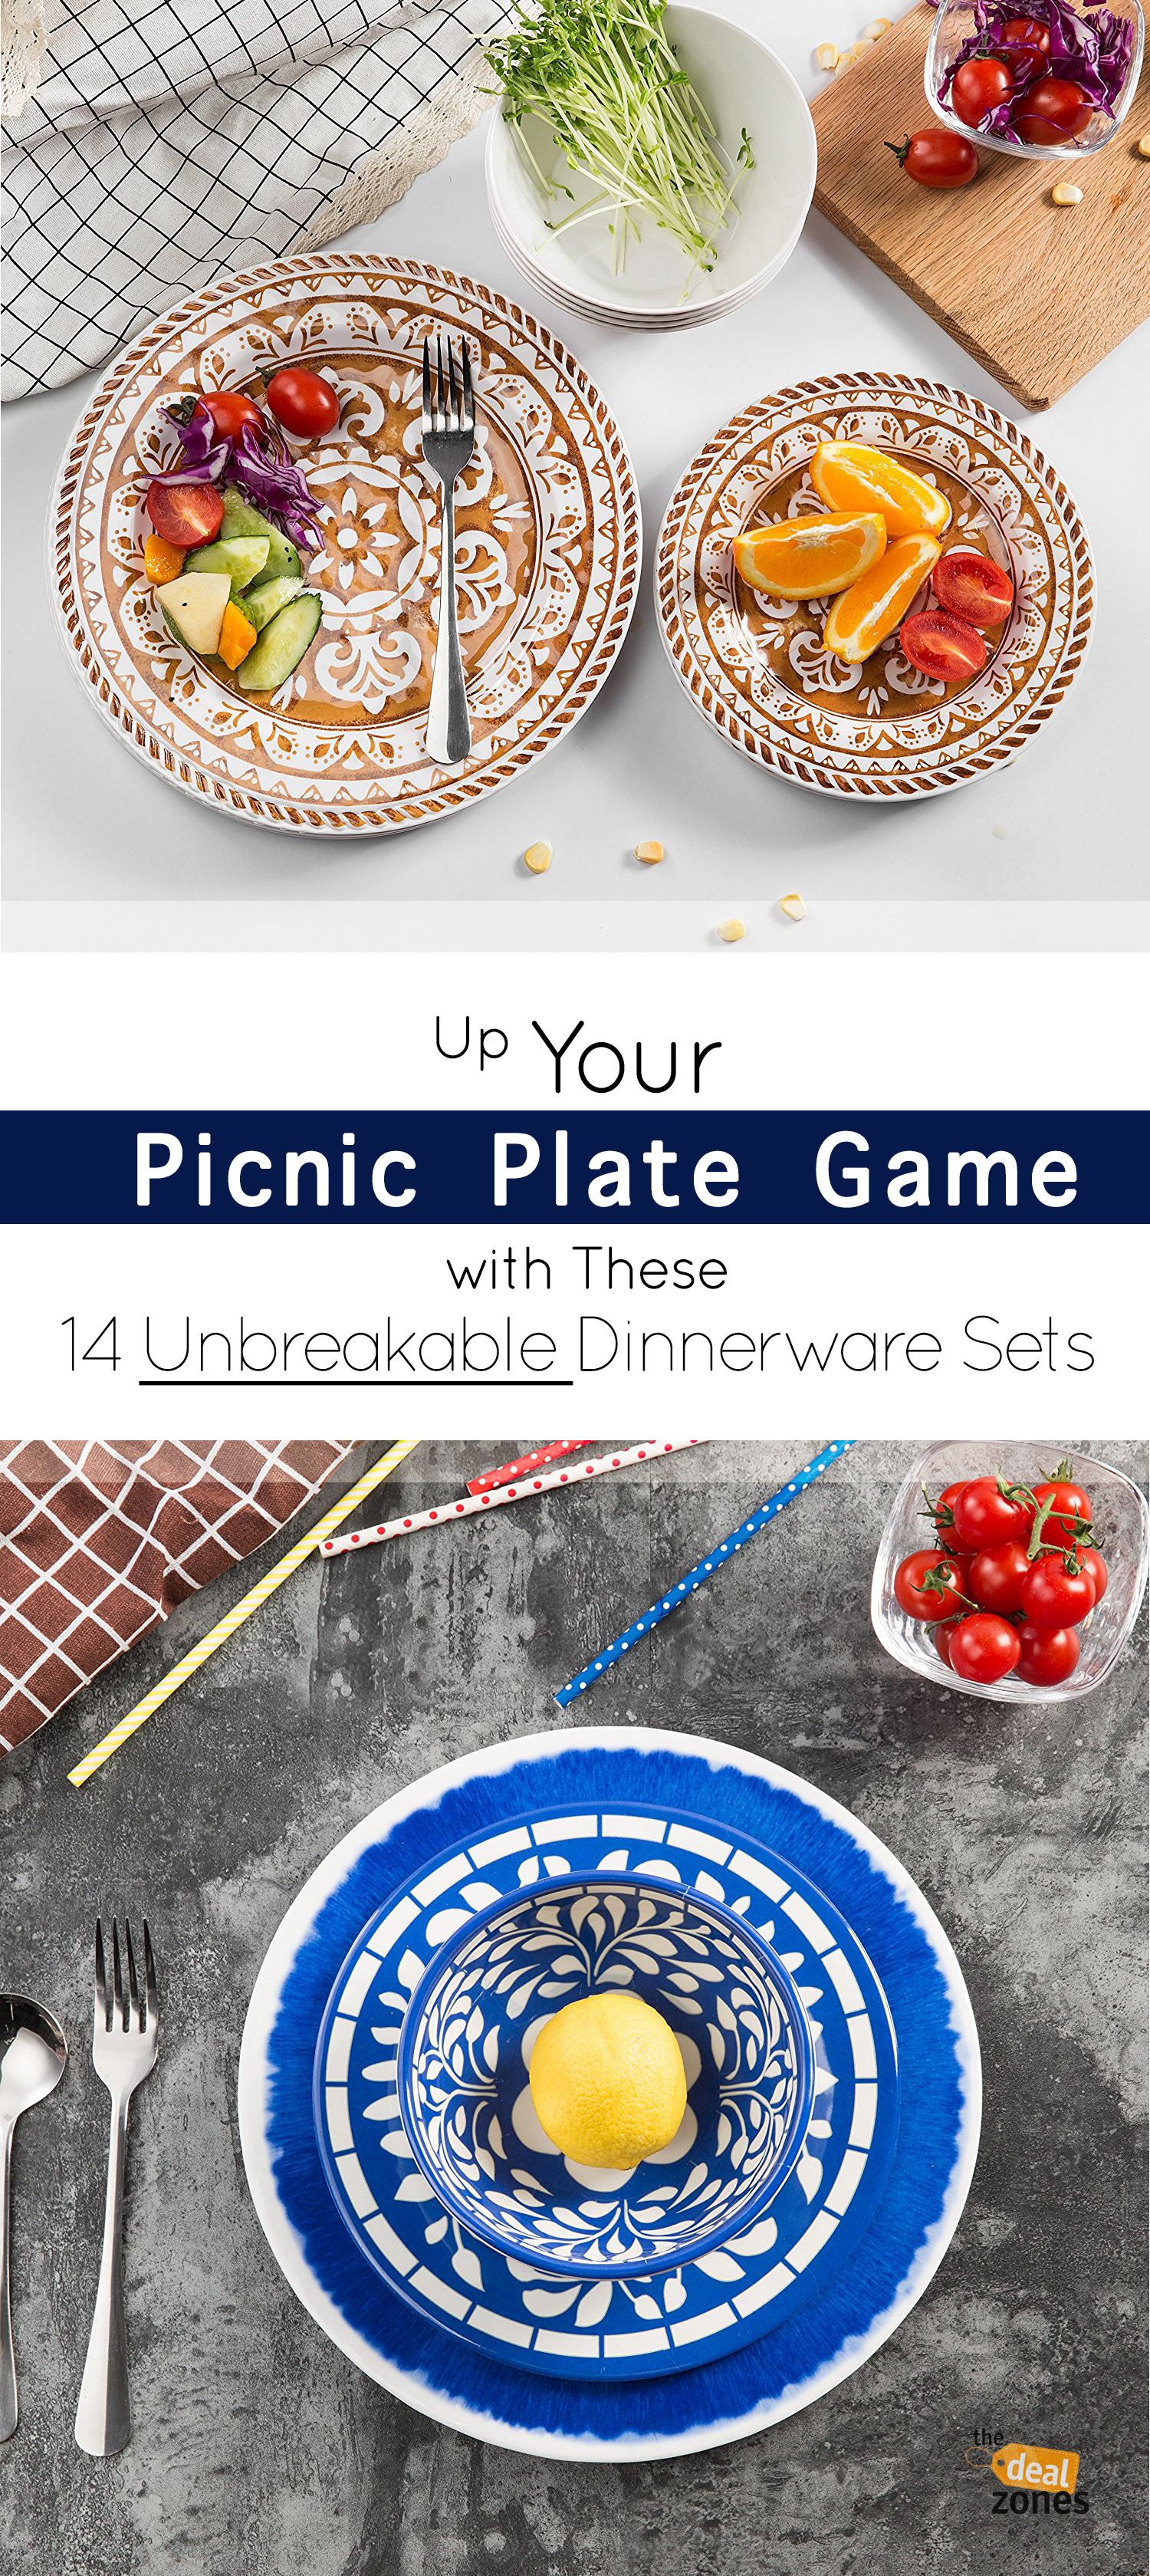 Up Your Picnic Plate Game with These 14 Unbreakable Dinnerware Sets On Amazon  sc 1 st  Pinterest & Up Your Picnic Plate Game with These 14 Unbreakable Dinnerware Sets ...